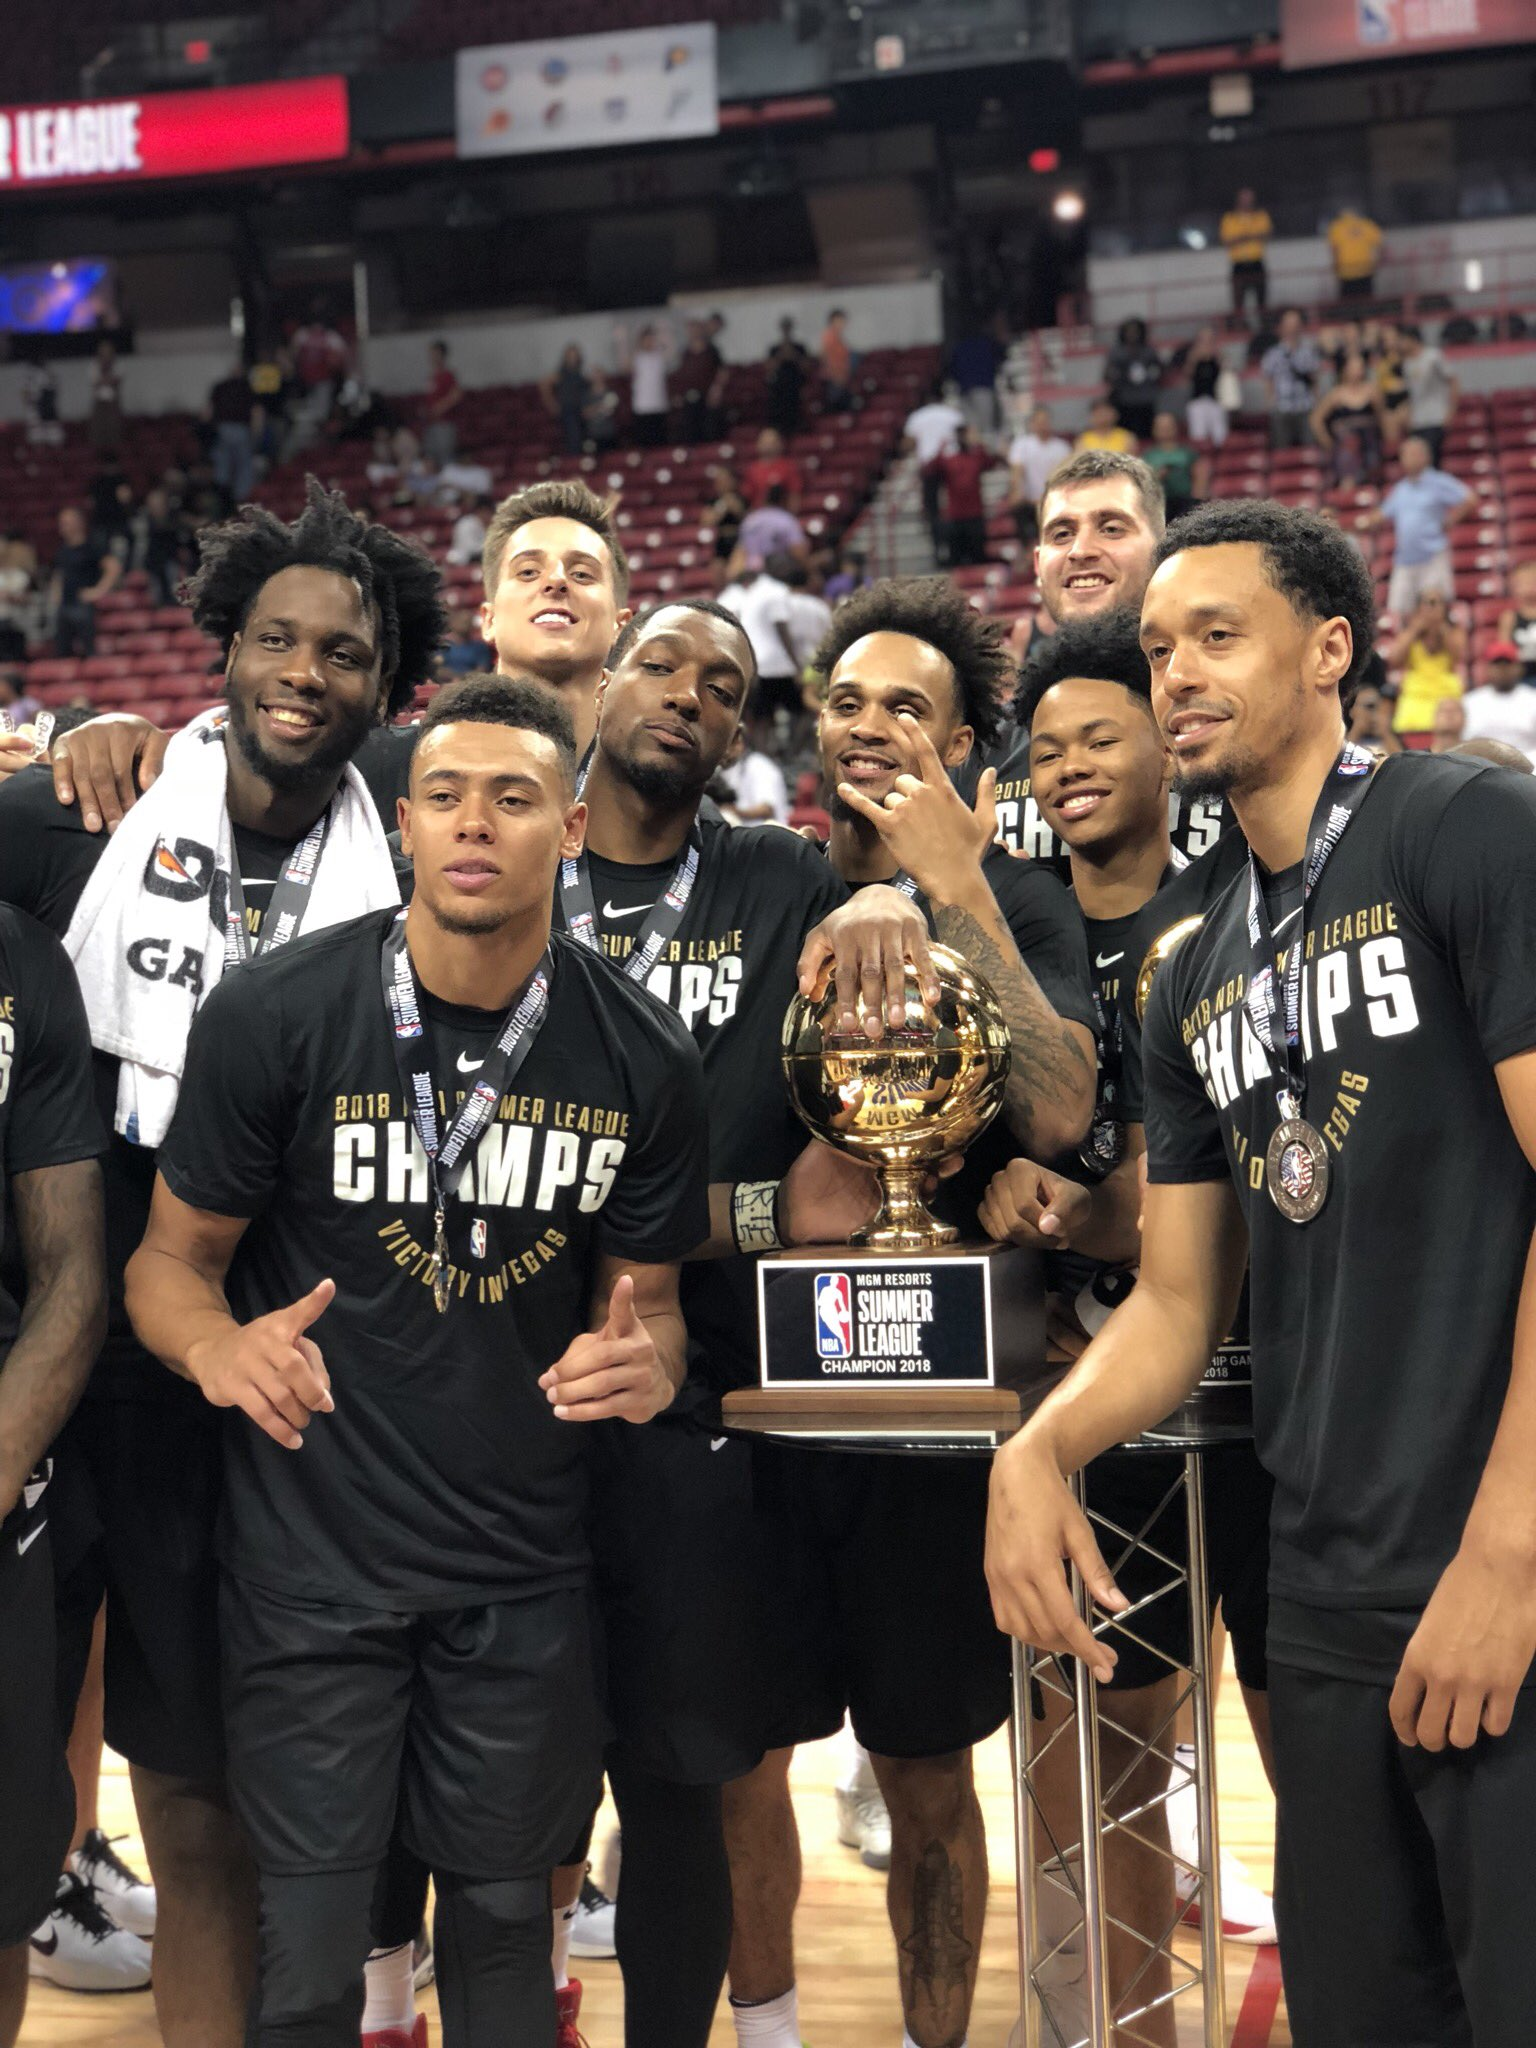 2018 @NBASummerLeague CHAMPS...@trailblazers! https://t.co/c0EVfp3zQx